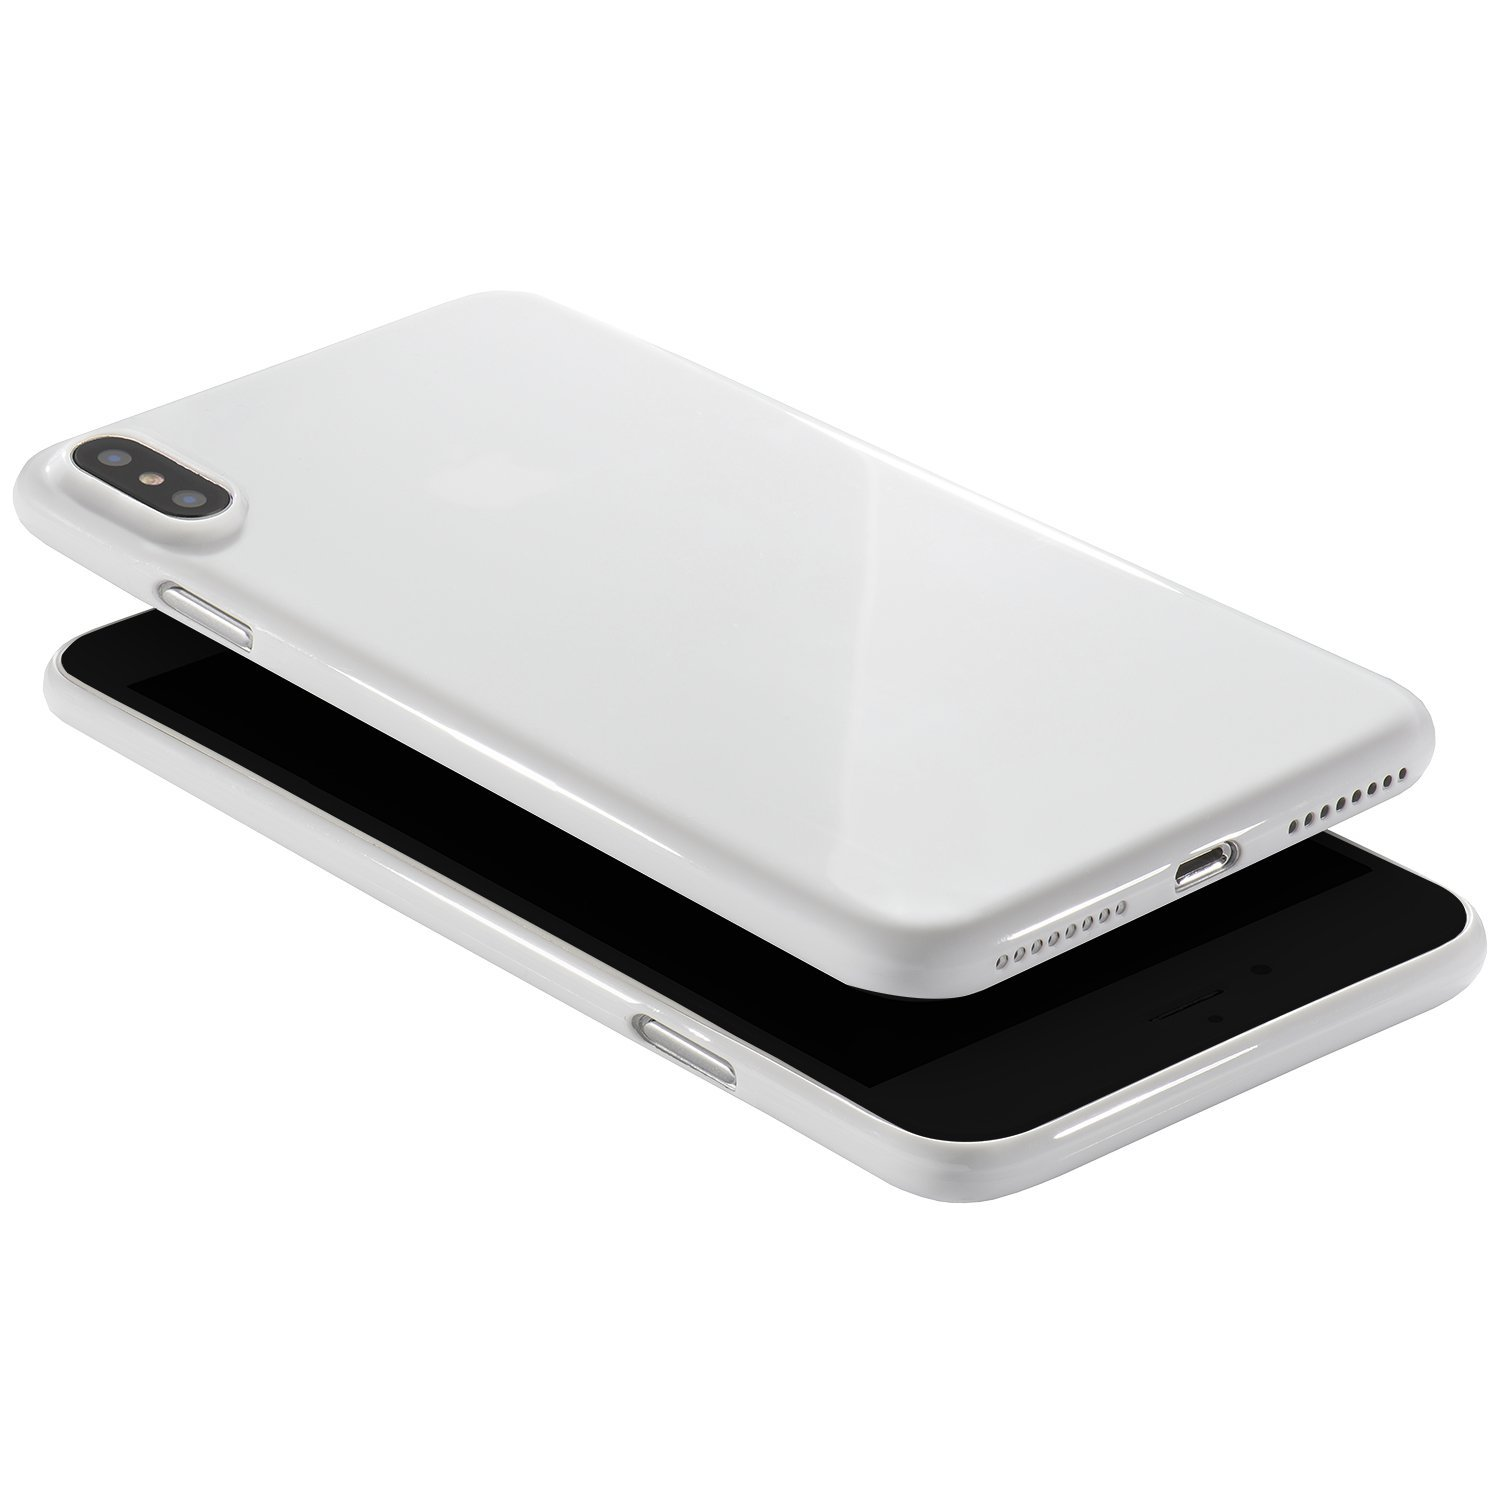 Minimalist iPhone X Case Amazon